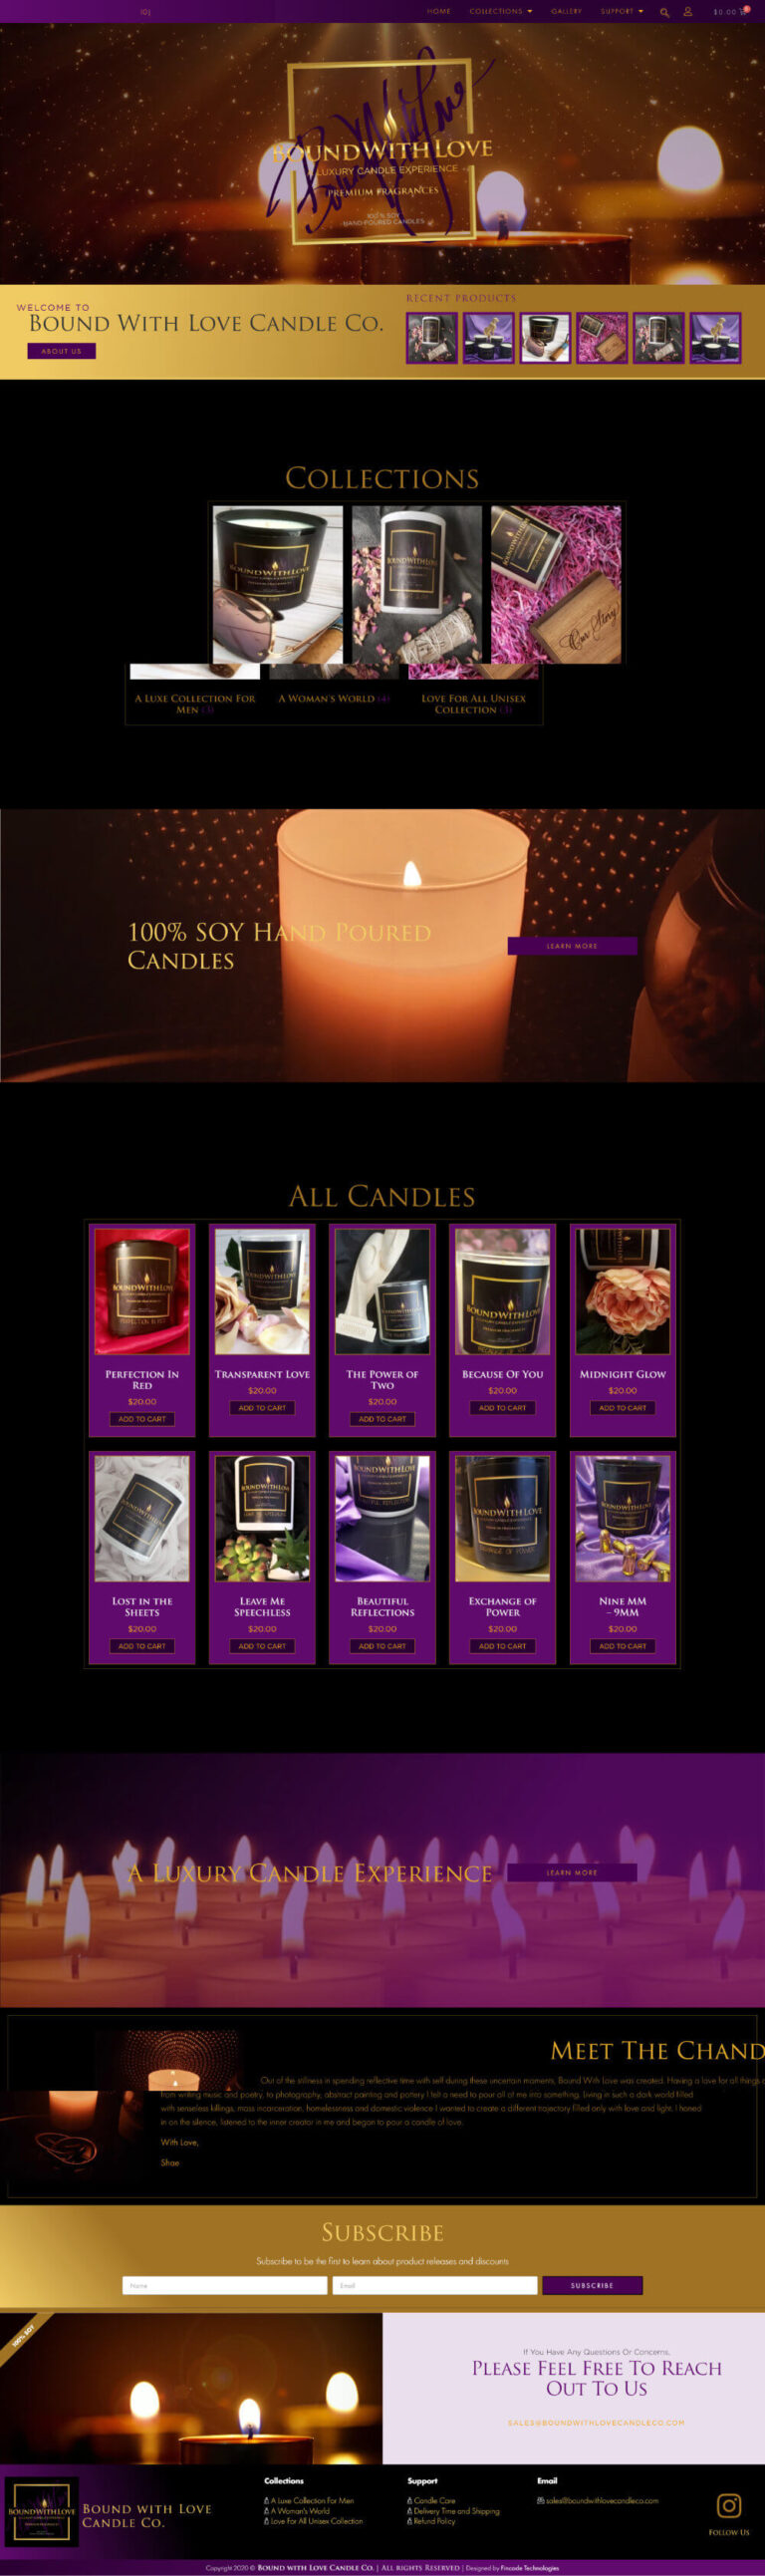 Boundwithlove Candle Website Design - Home